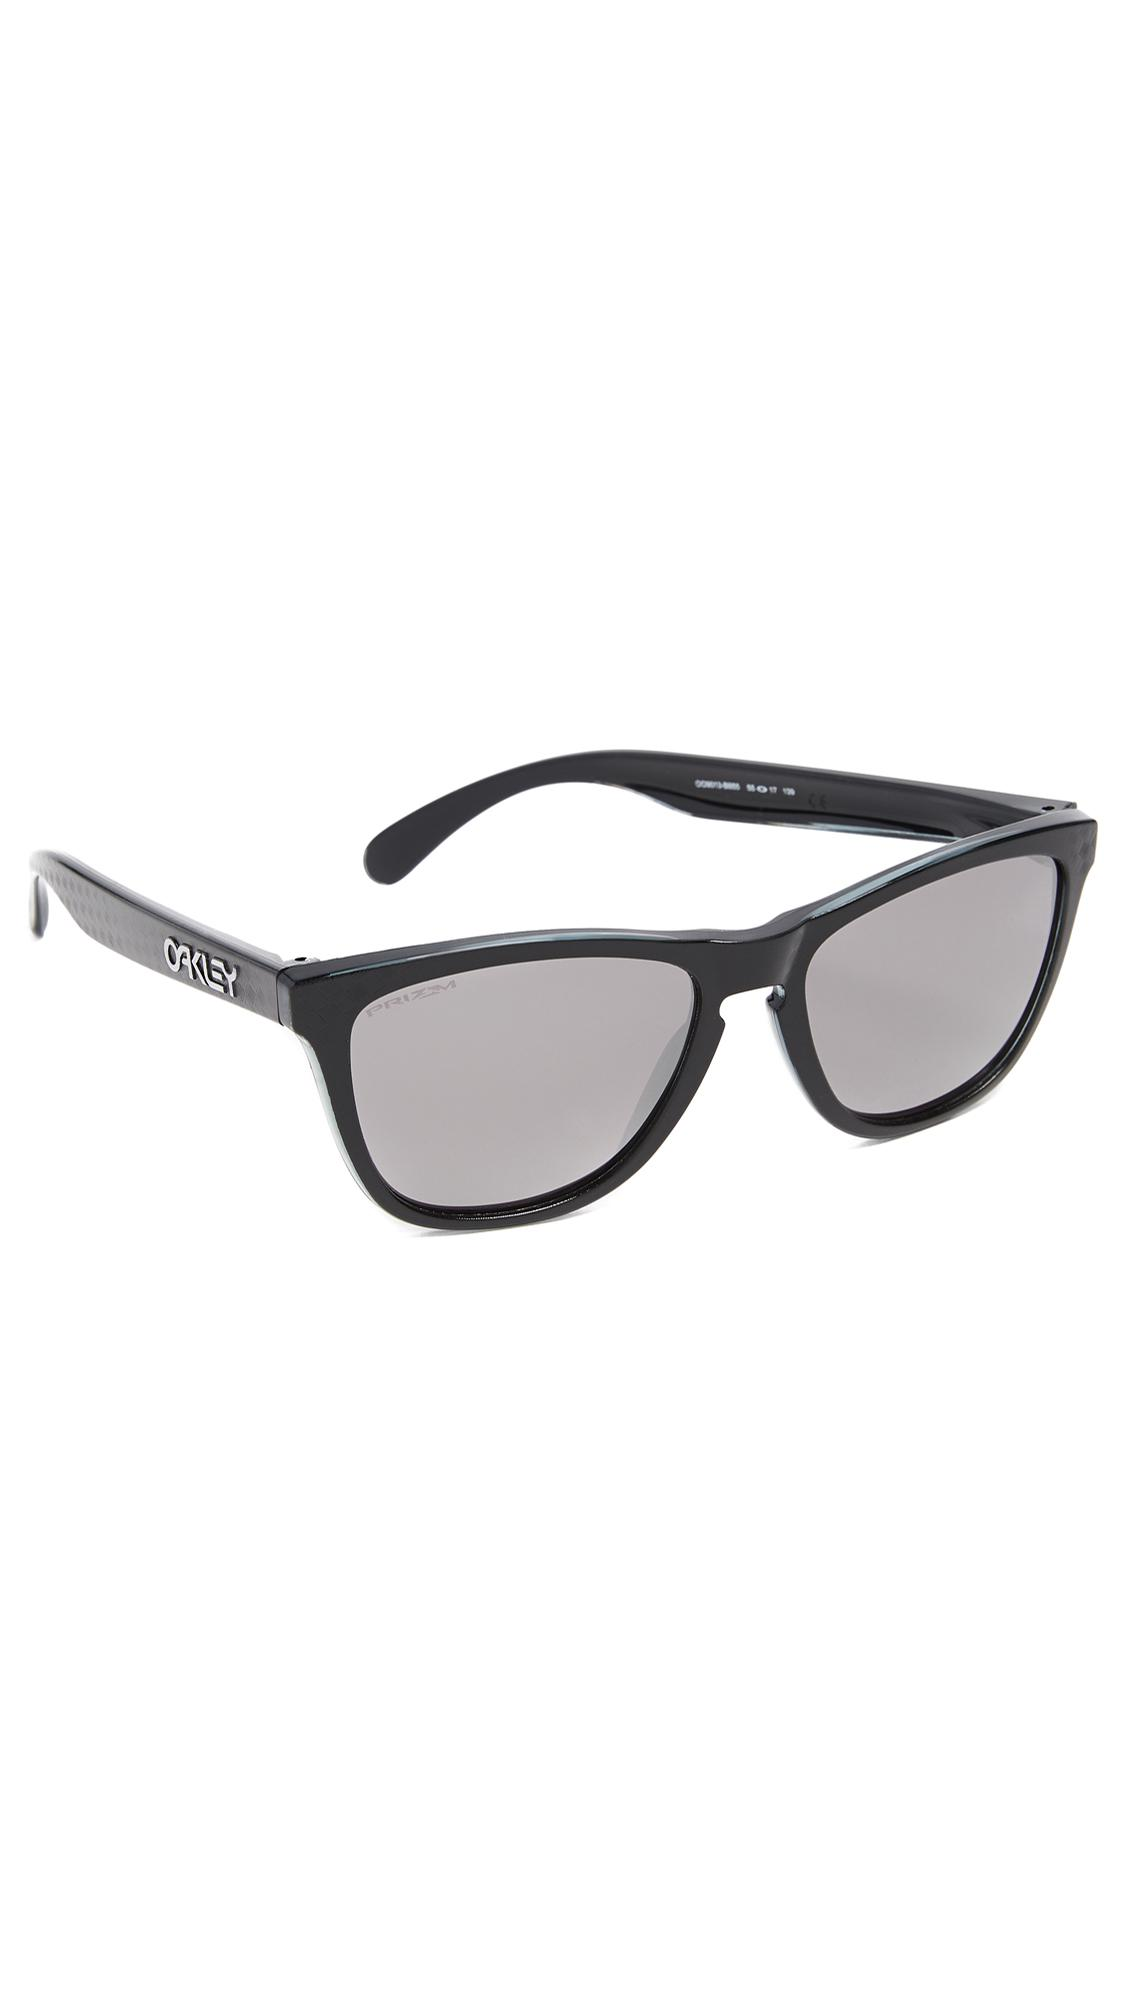 1887ce8a63 Lyst - Oakley Frogskins Prizm Checkbox Sunglasses in Black for Men